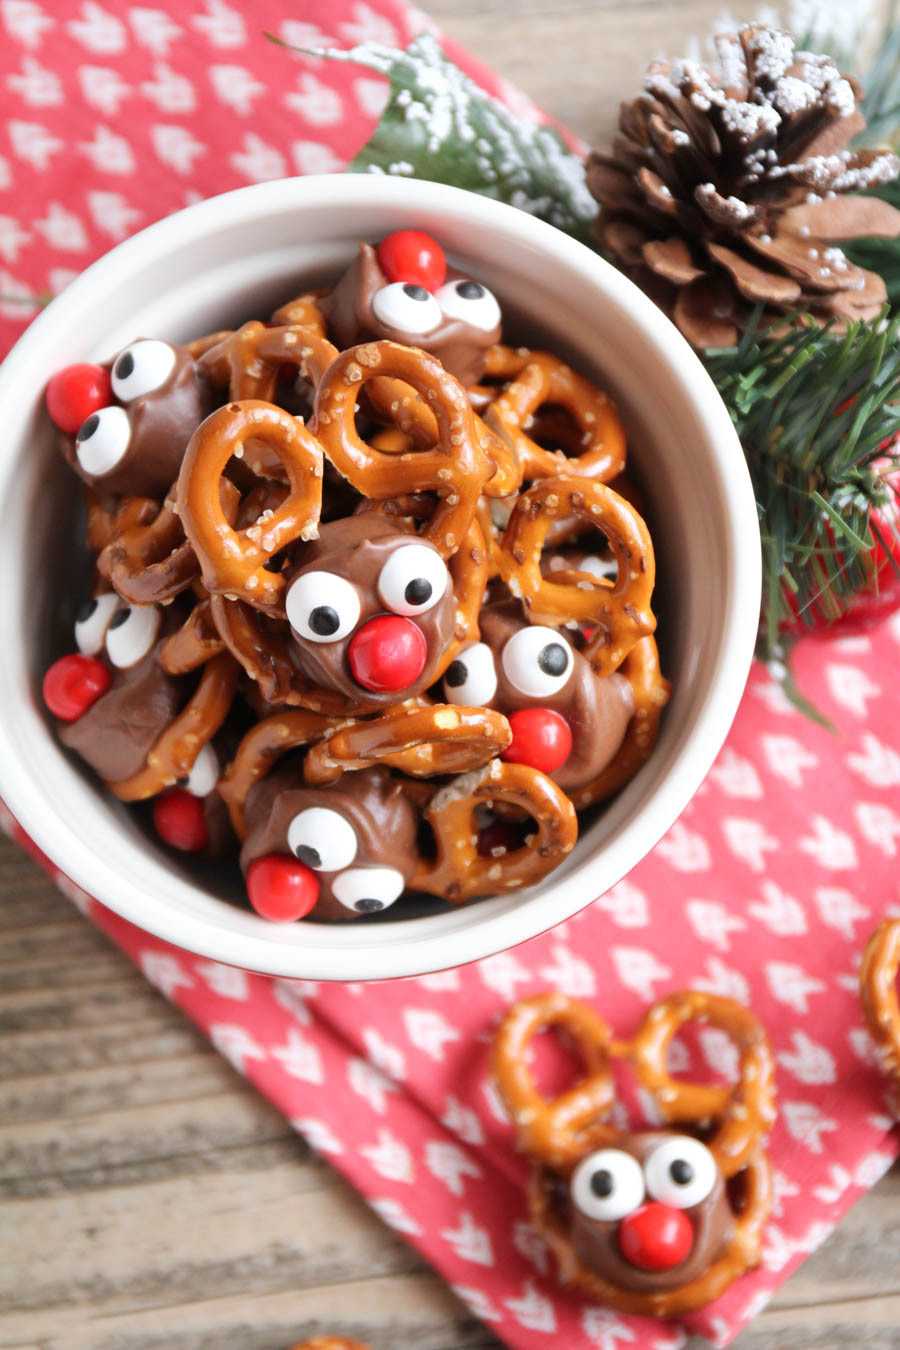 25 Fun Christmas Treat Ideas – Fun-Squared